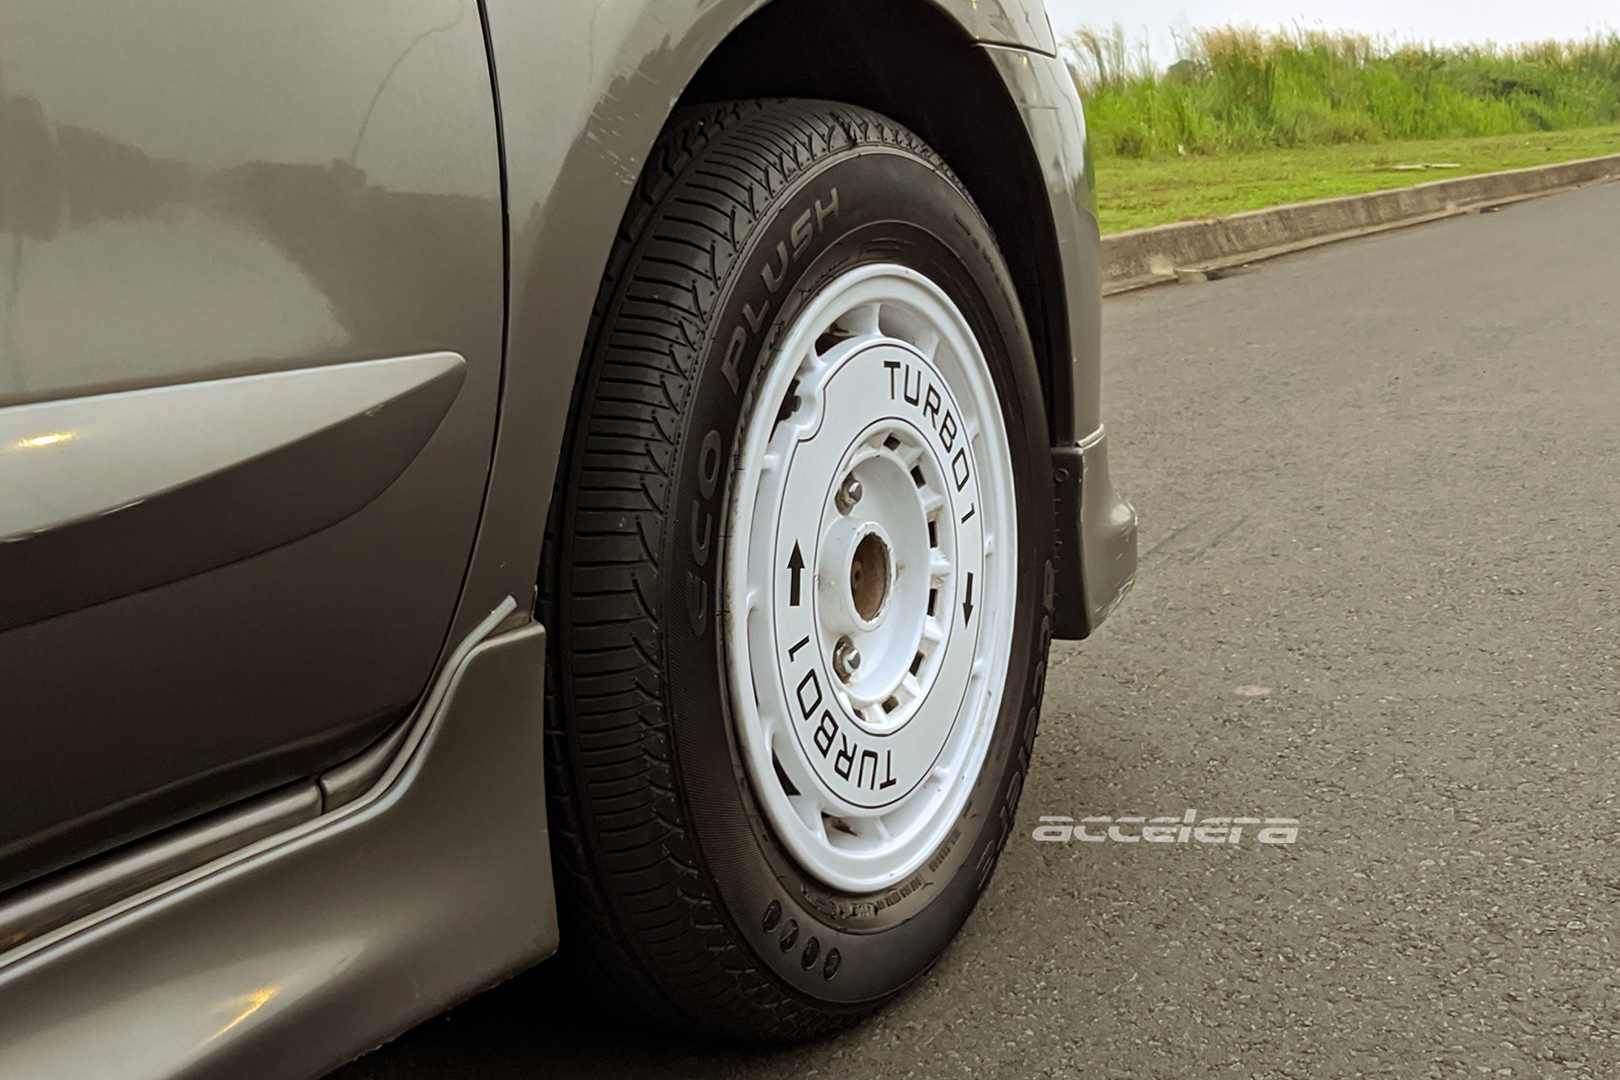 Tyre Rotation Will Save You Some Cost